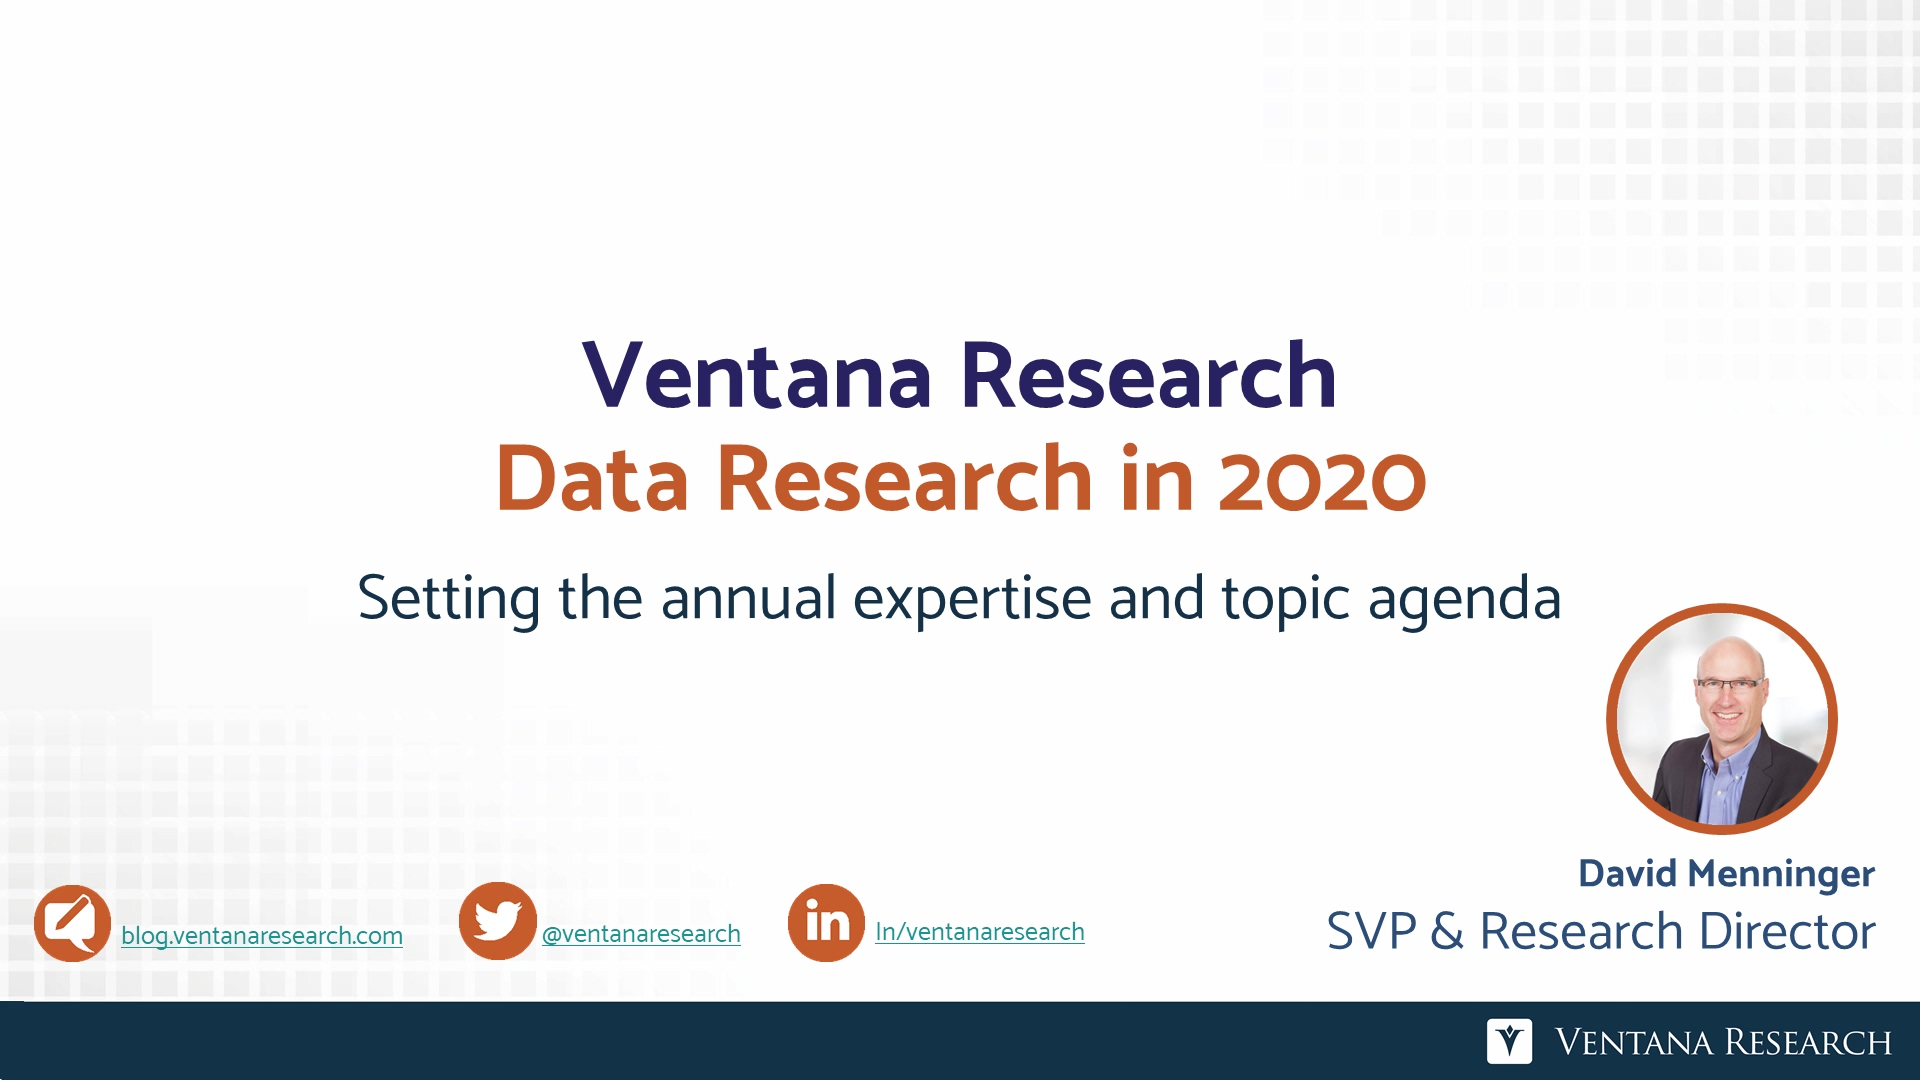 Ventana_Research_2020_Data_Research_Agenda